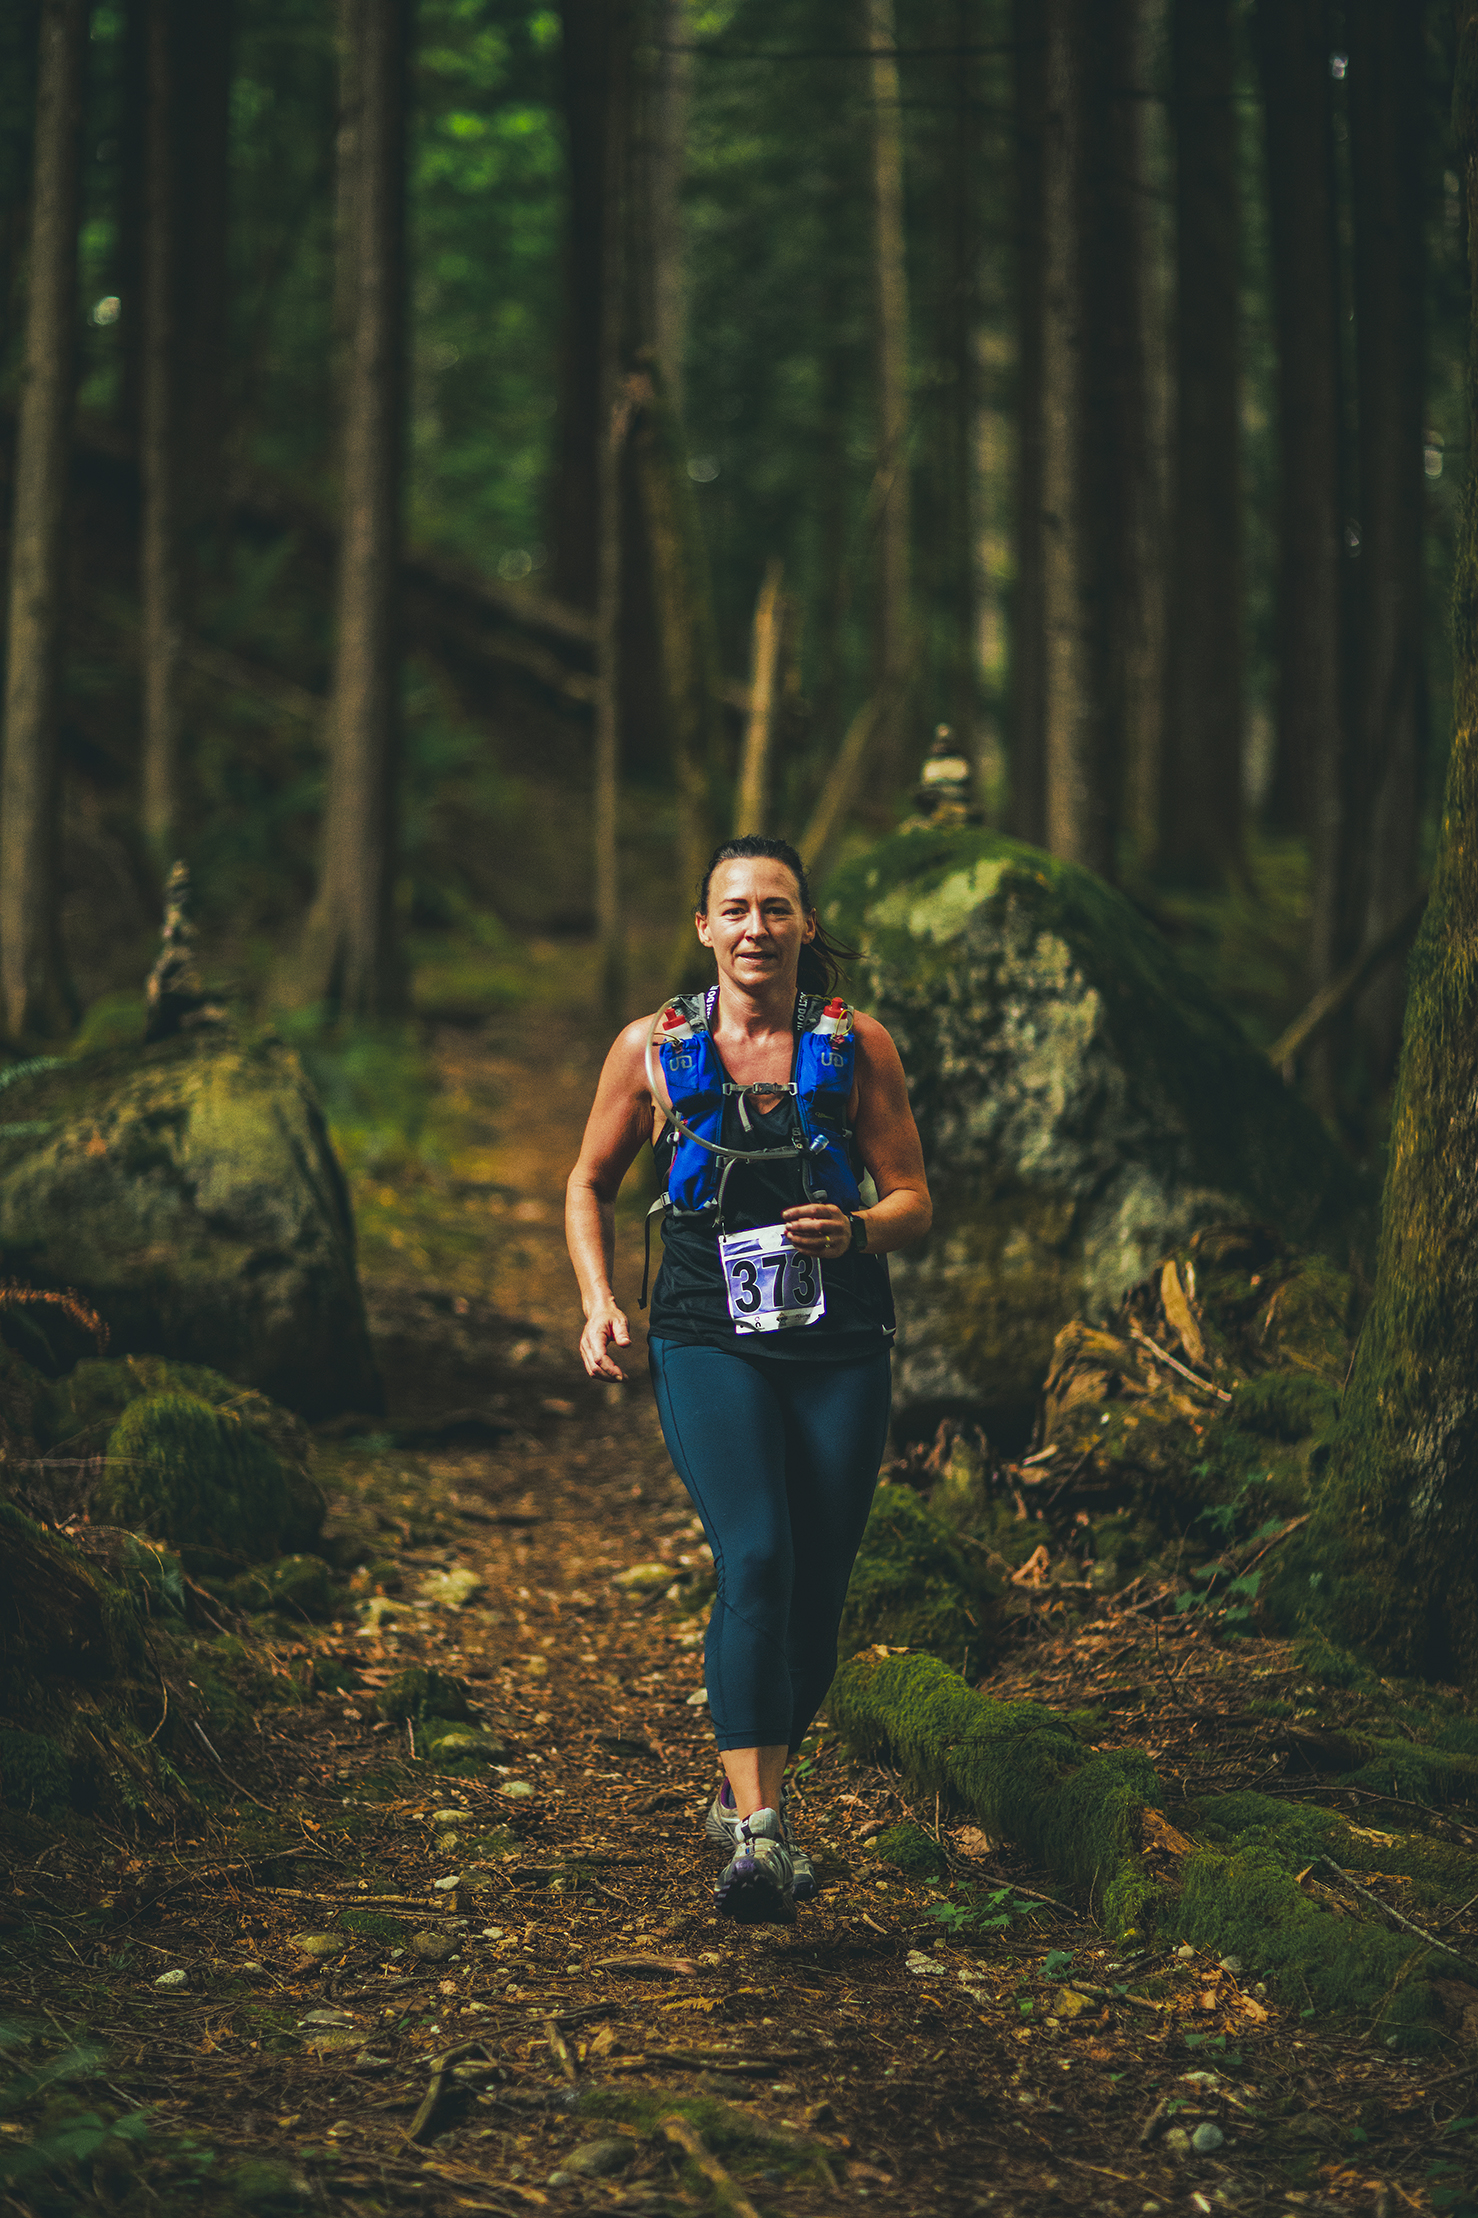 Fraser Valley Trail Races - Bear Mountain - IMG_2242 by Brice Ferre Studio - Vancouver Portrait Adventure and Athlete Photographer.jpg